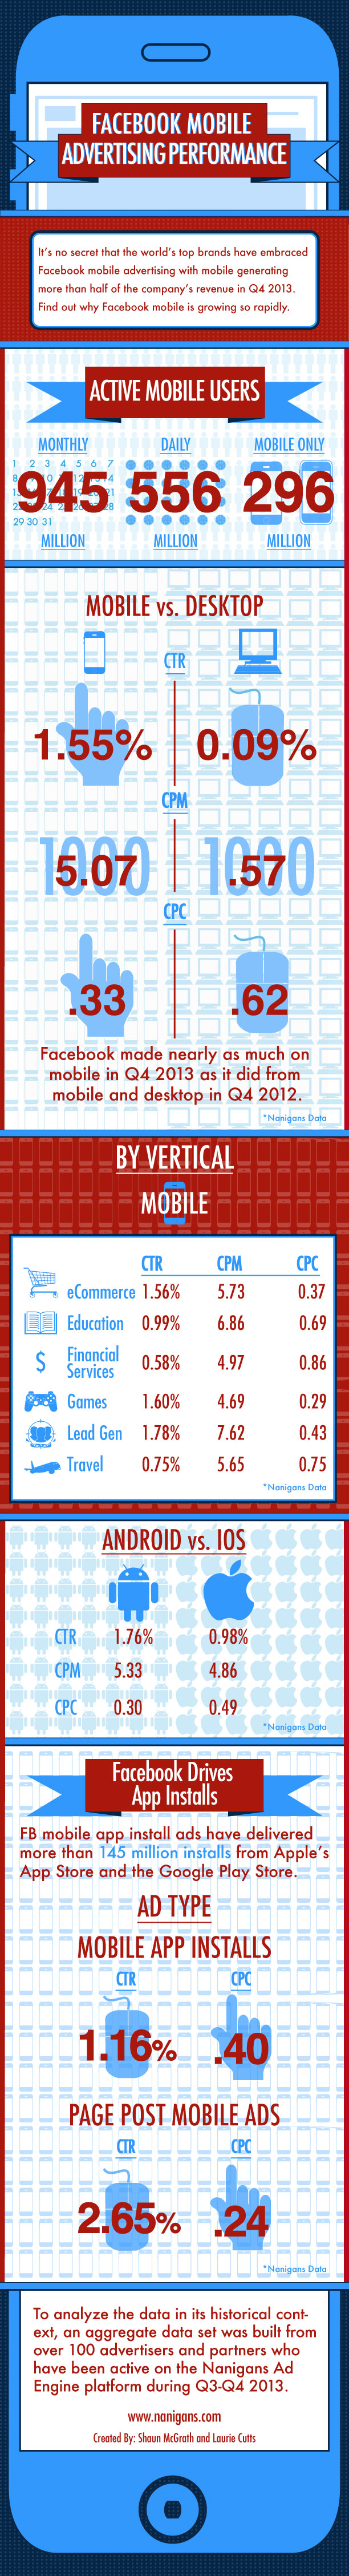 Mobile Ads-FB